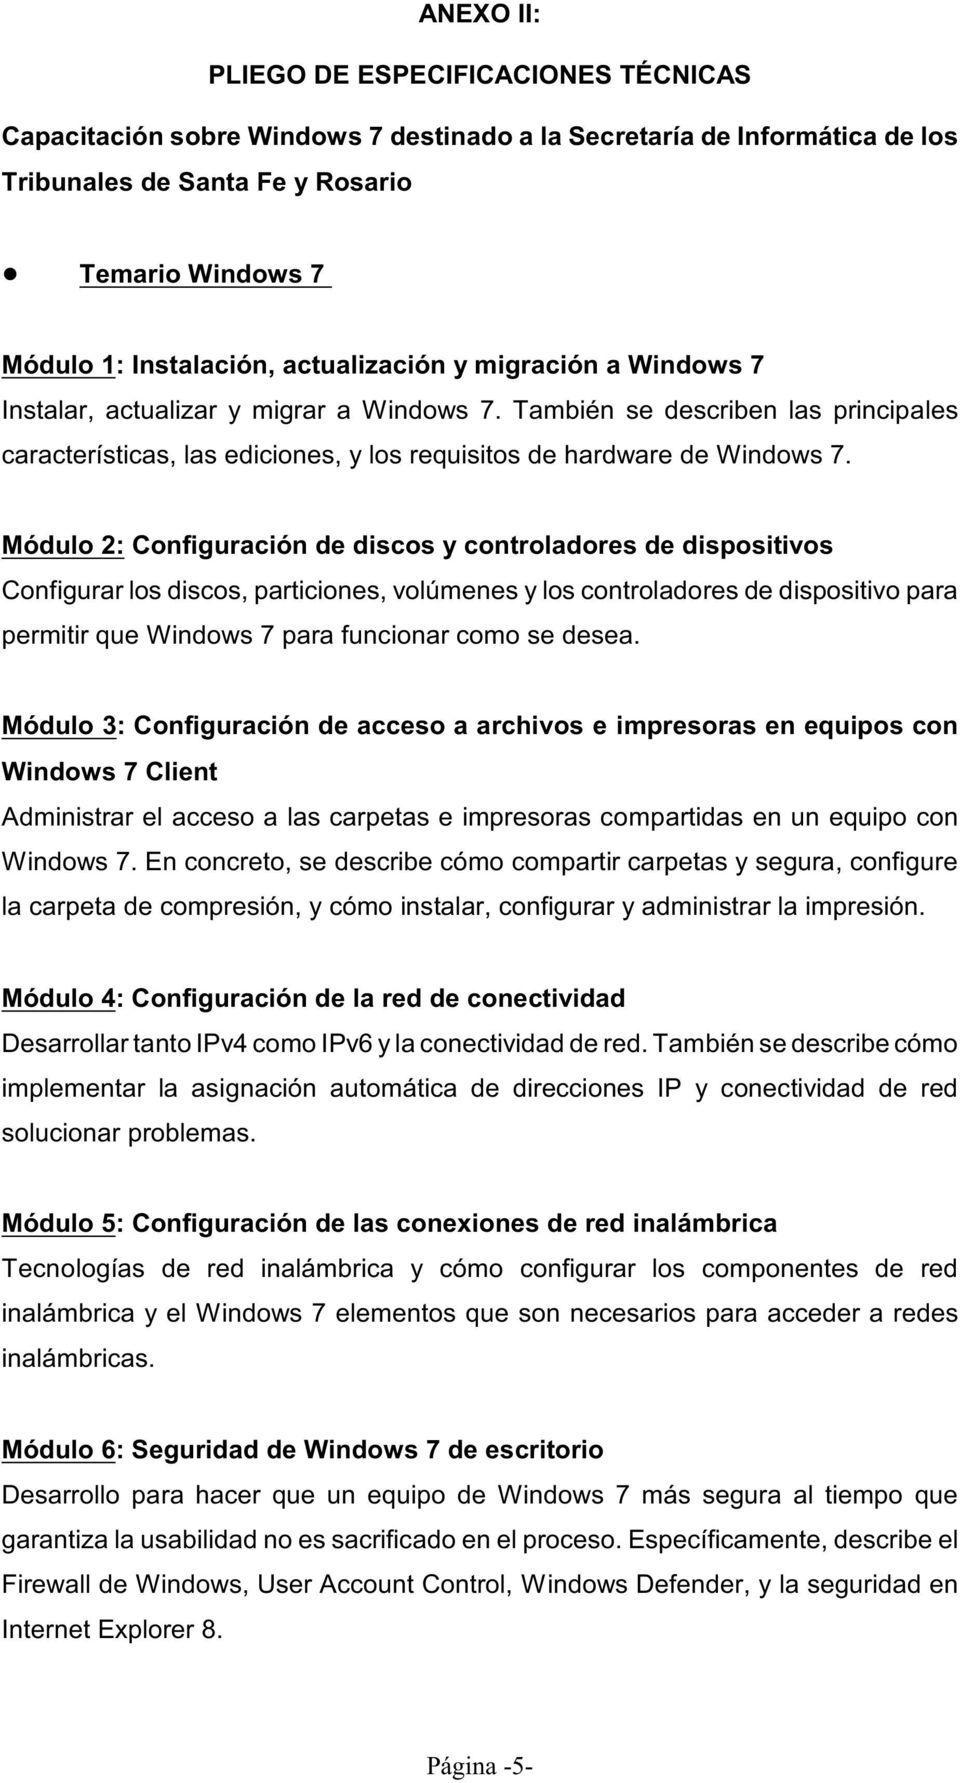 También se describen las principales características, las ediciones, y los requisitos de hardware de Windows 7.